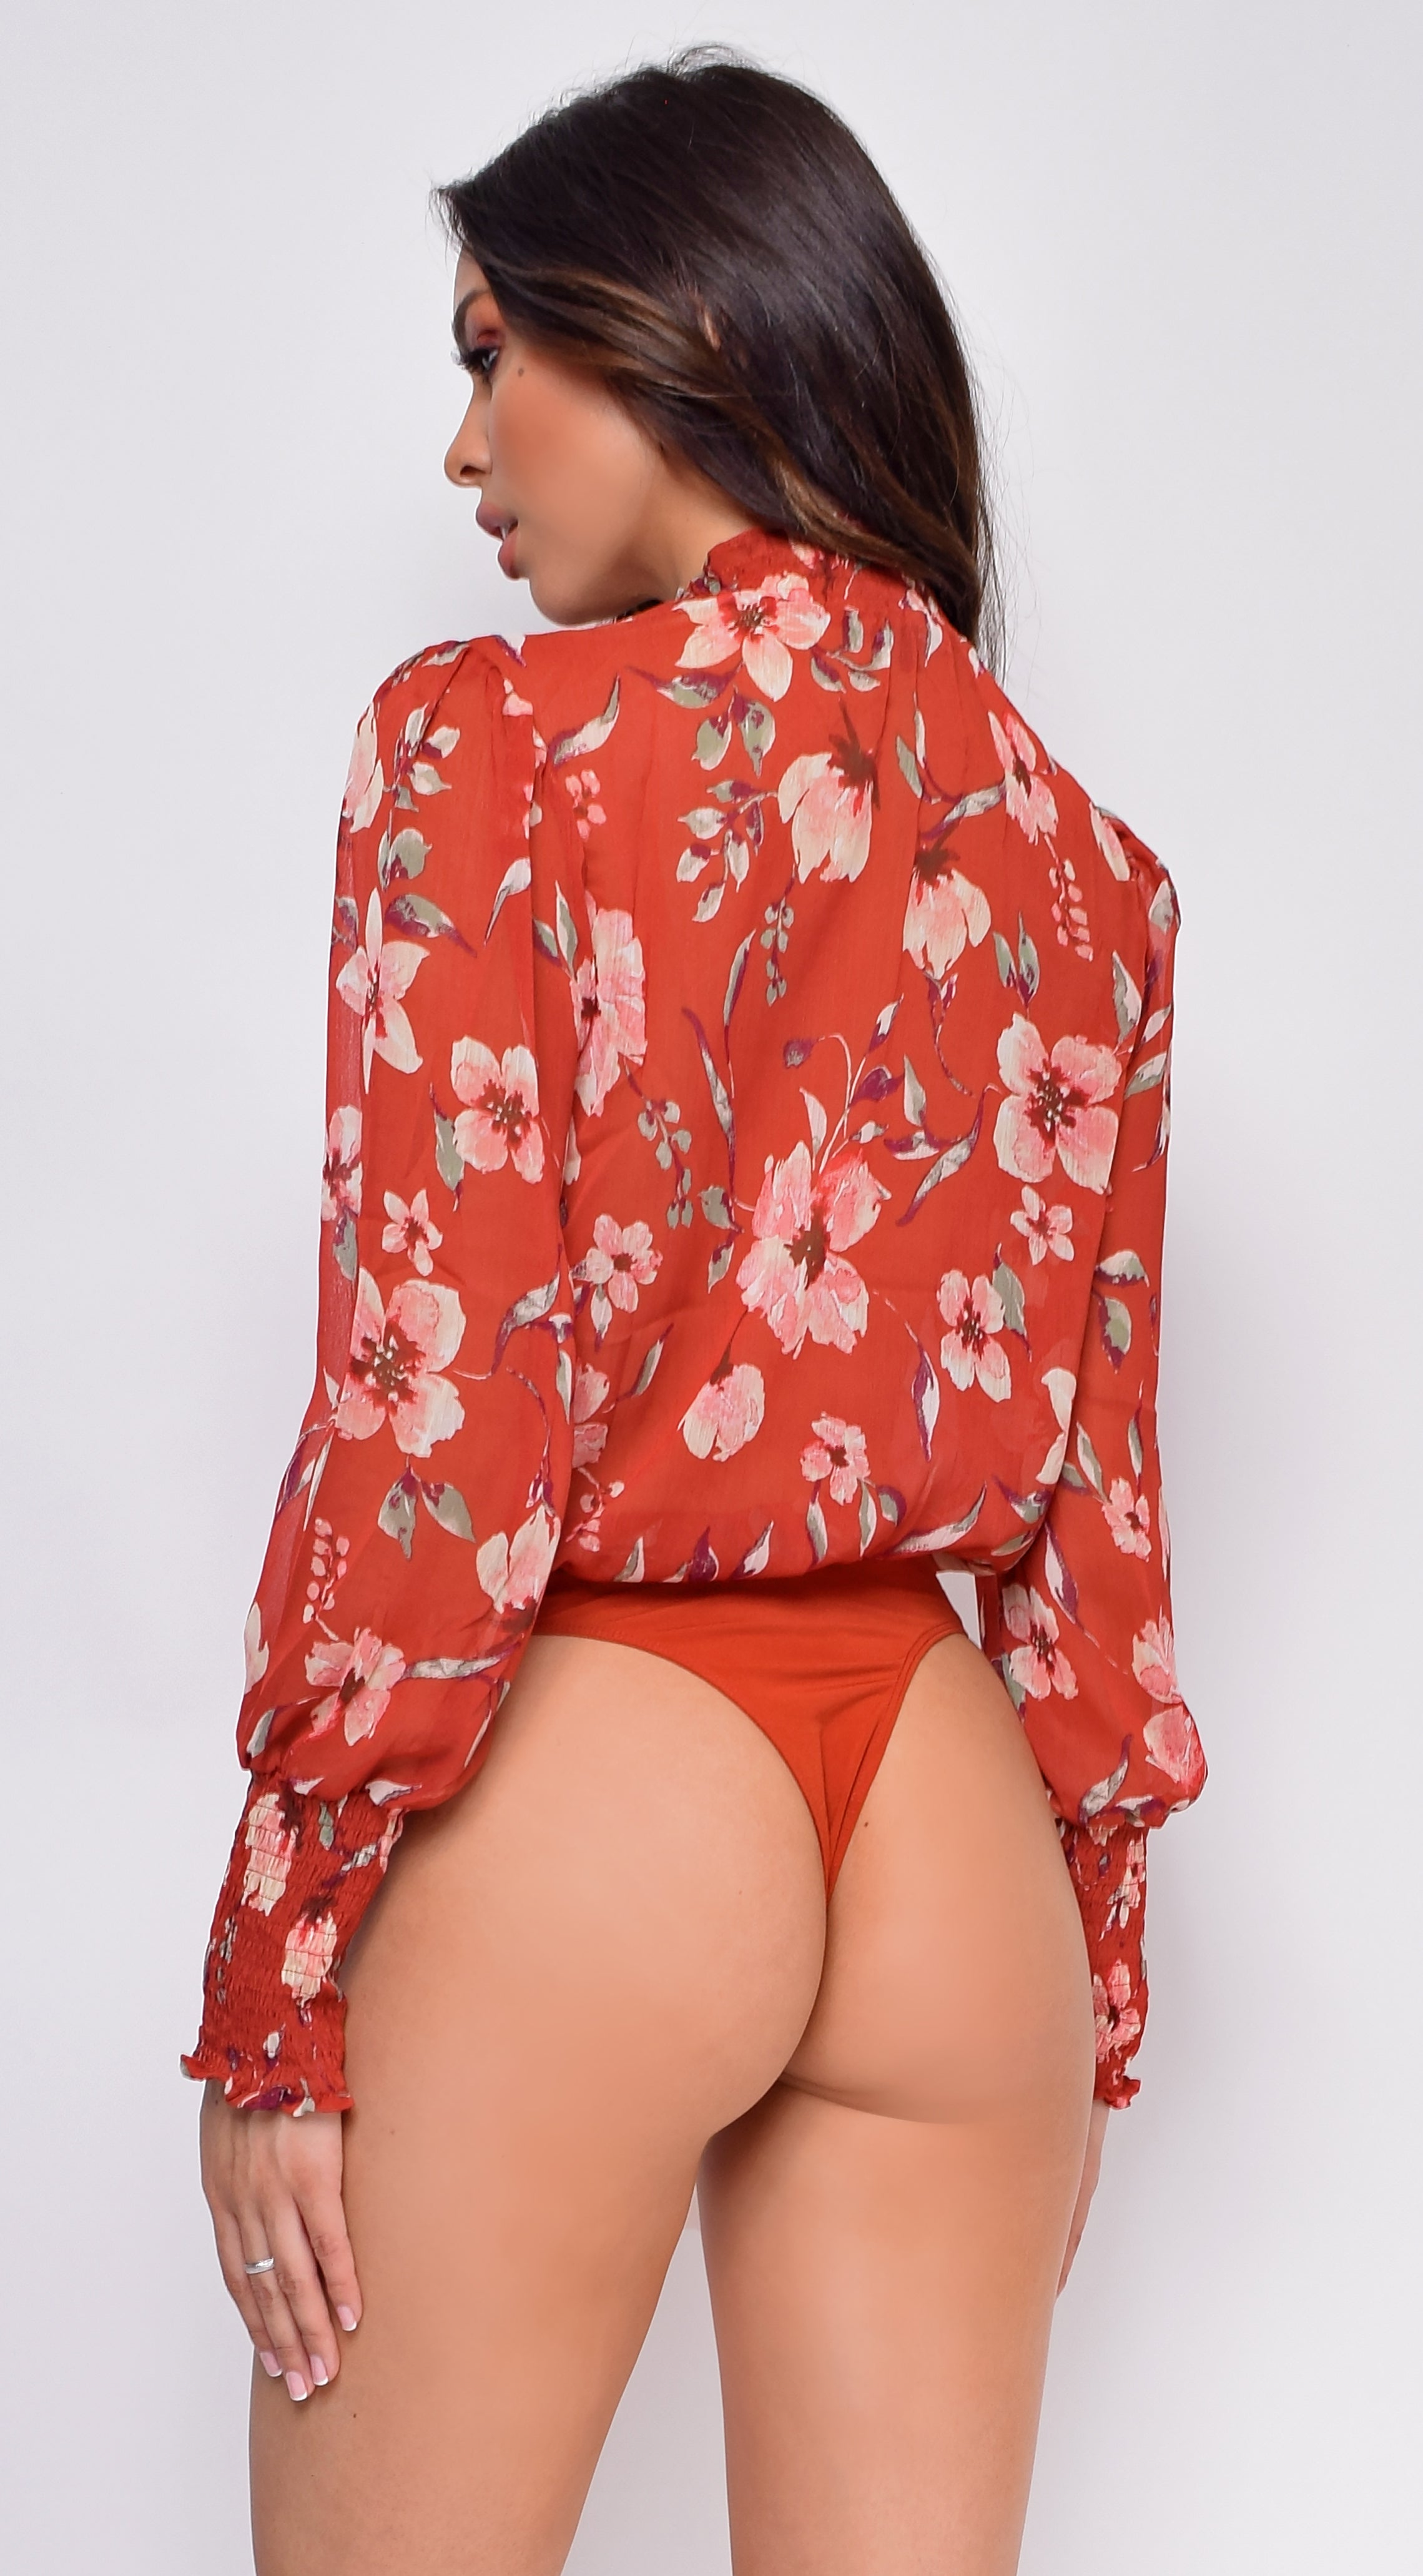 Elle Red Floral High Neck Bodysuit